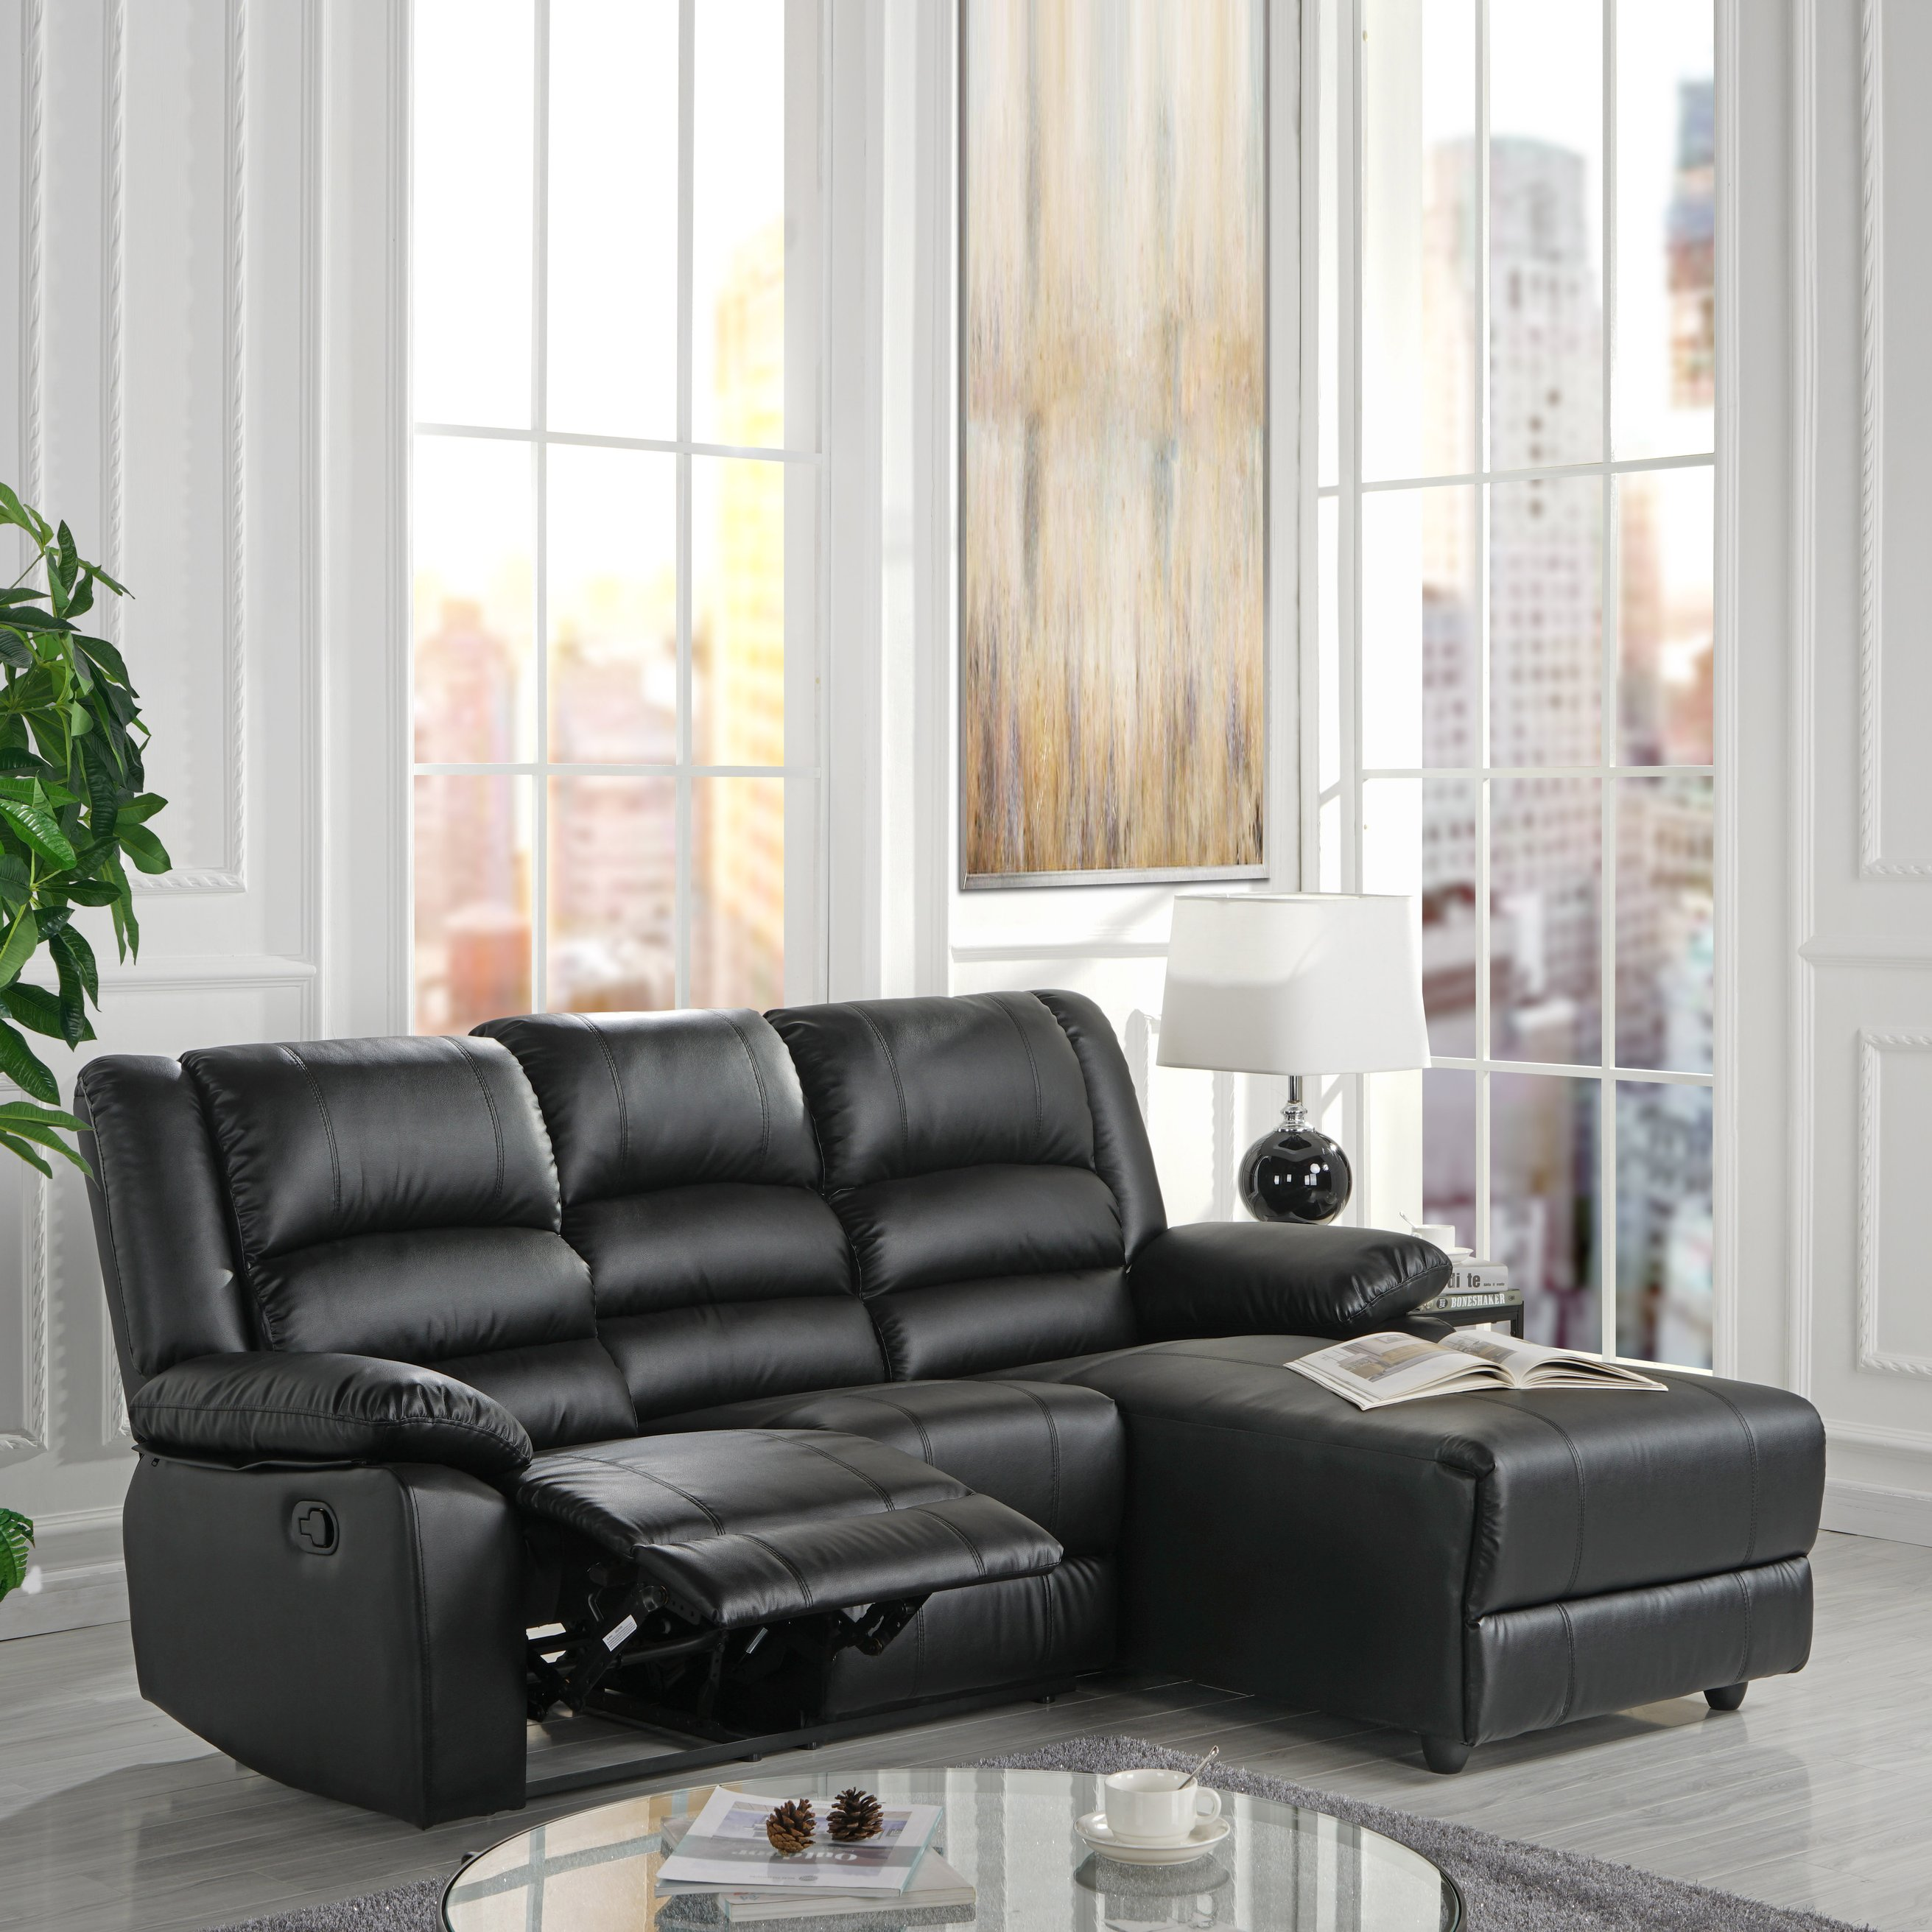 Cool Details About Bonded Leather Loveseat Recliner Right Facing Chaise With Plush Seating Black Andrewgaddart Wooden Chair Designs For Living Room Andrewgaddartcom